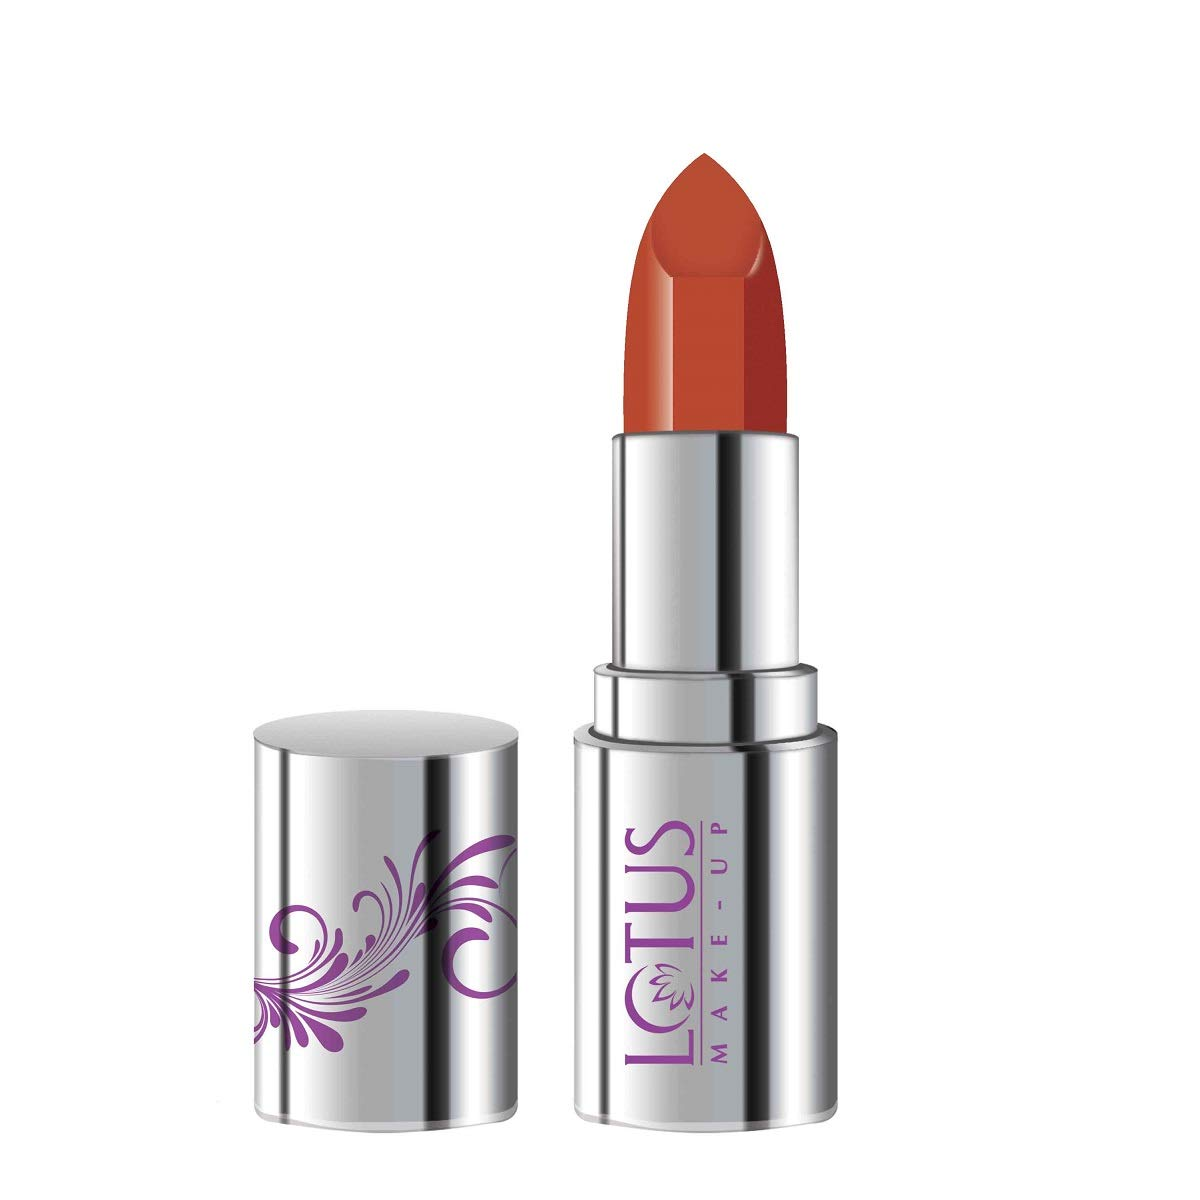 Lotus Makeup Ecostay Butter Matte Lip Color Coral Vogaye, Red, 4 g